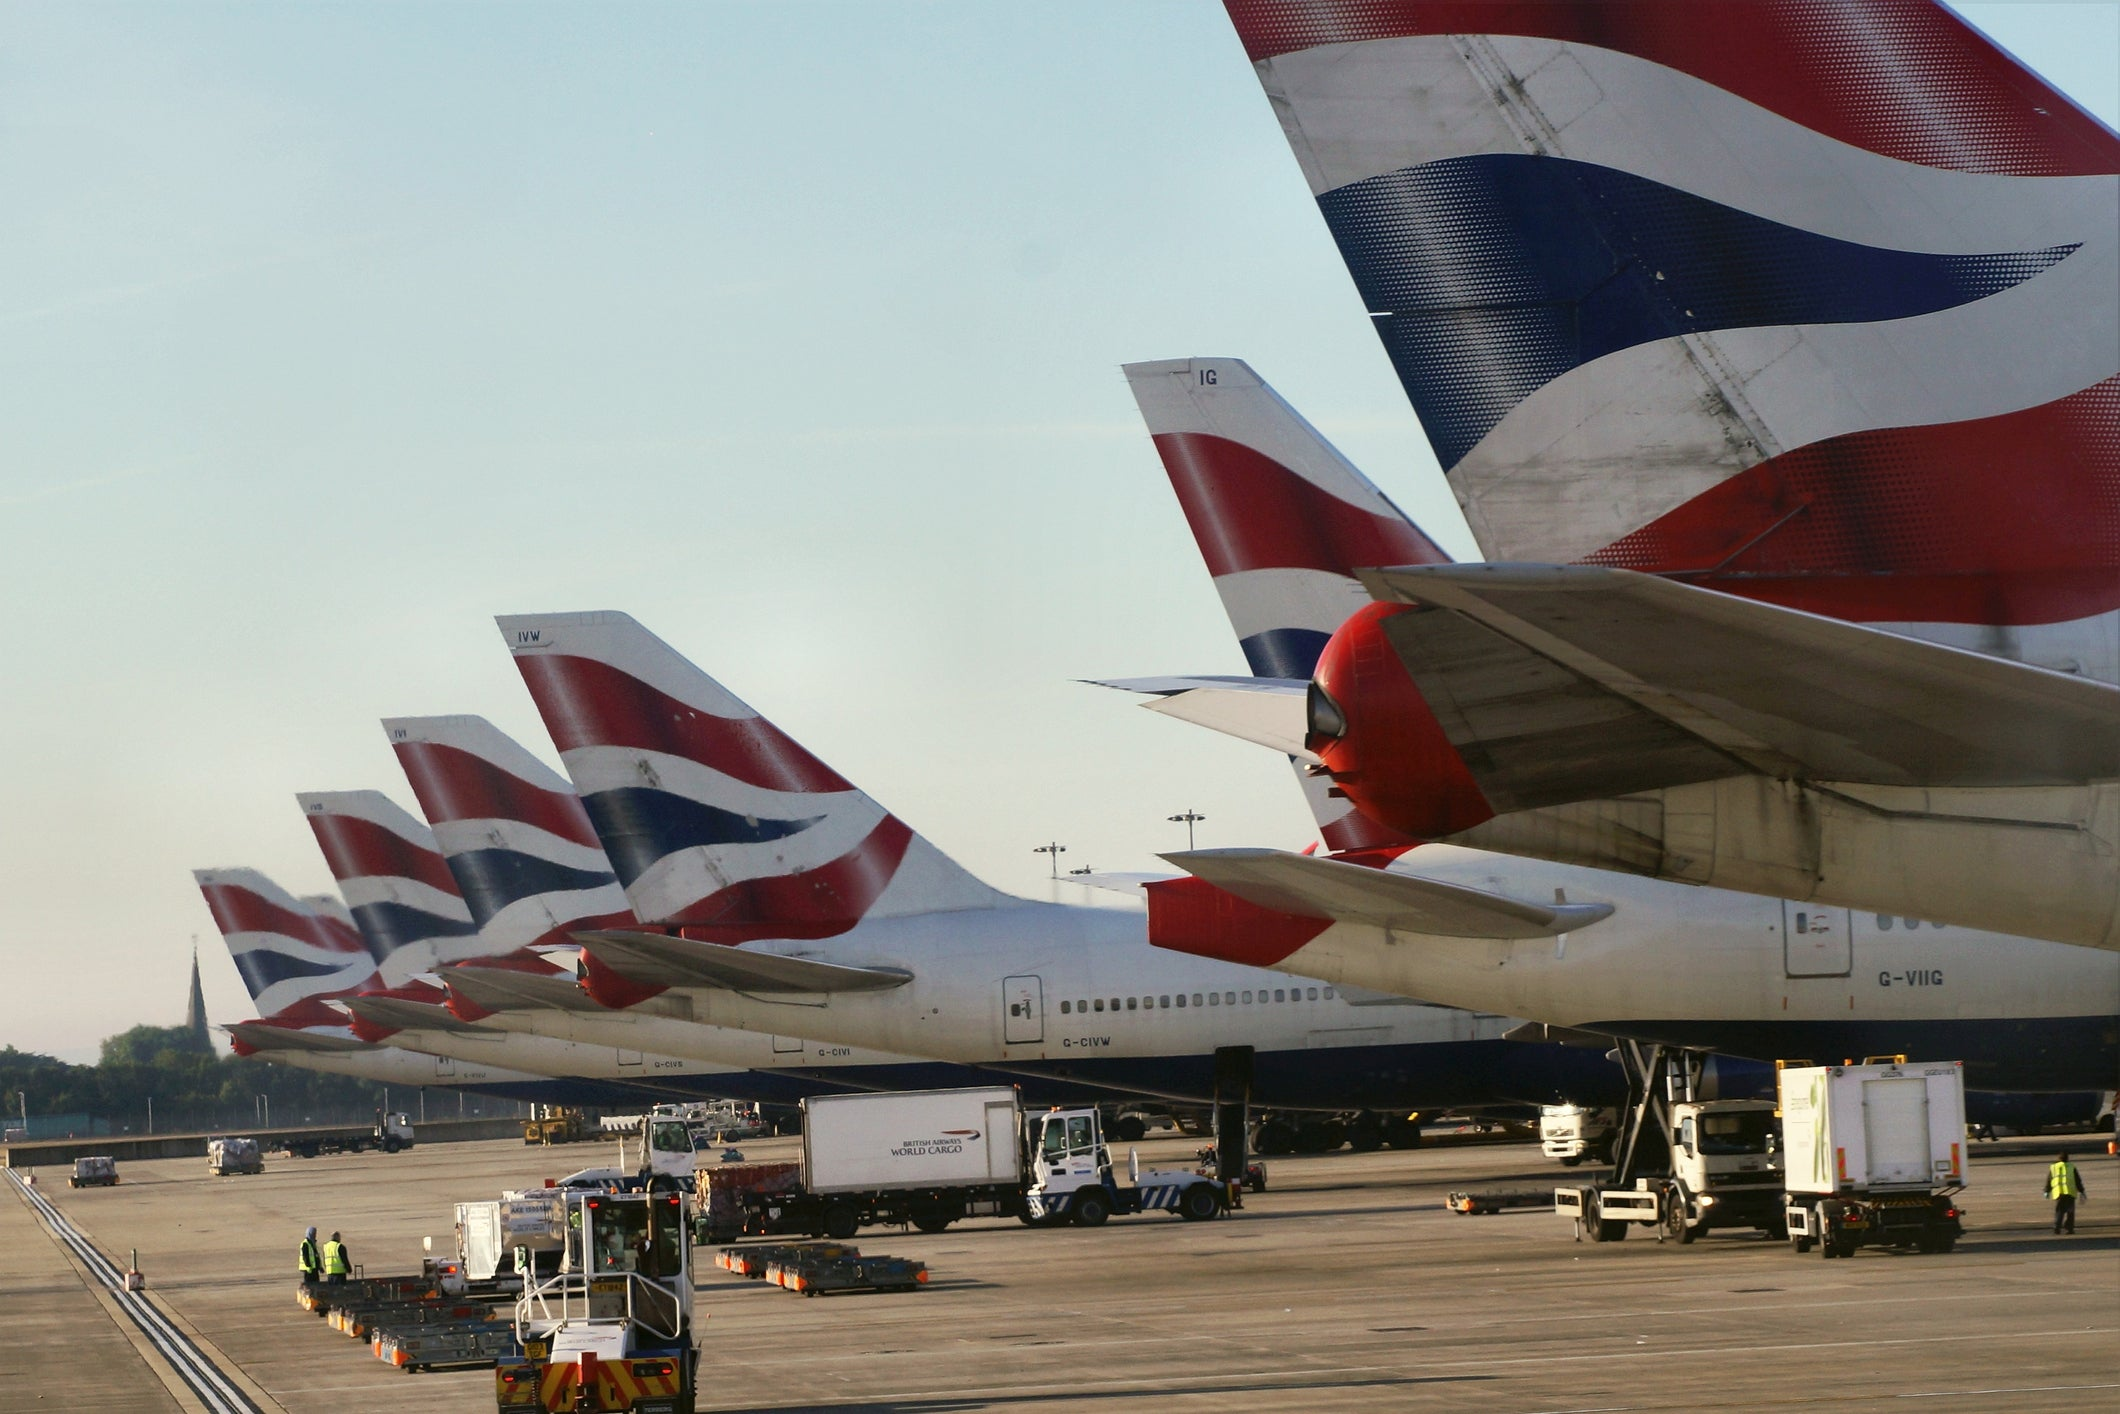 British Airways strike: Some passengers lose out on refunds after cancelled flights